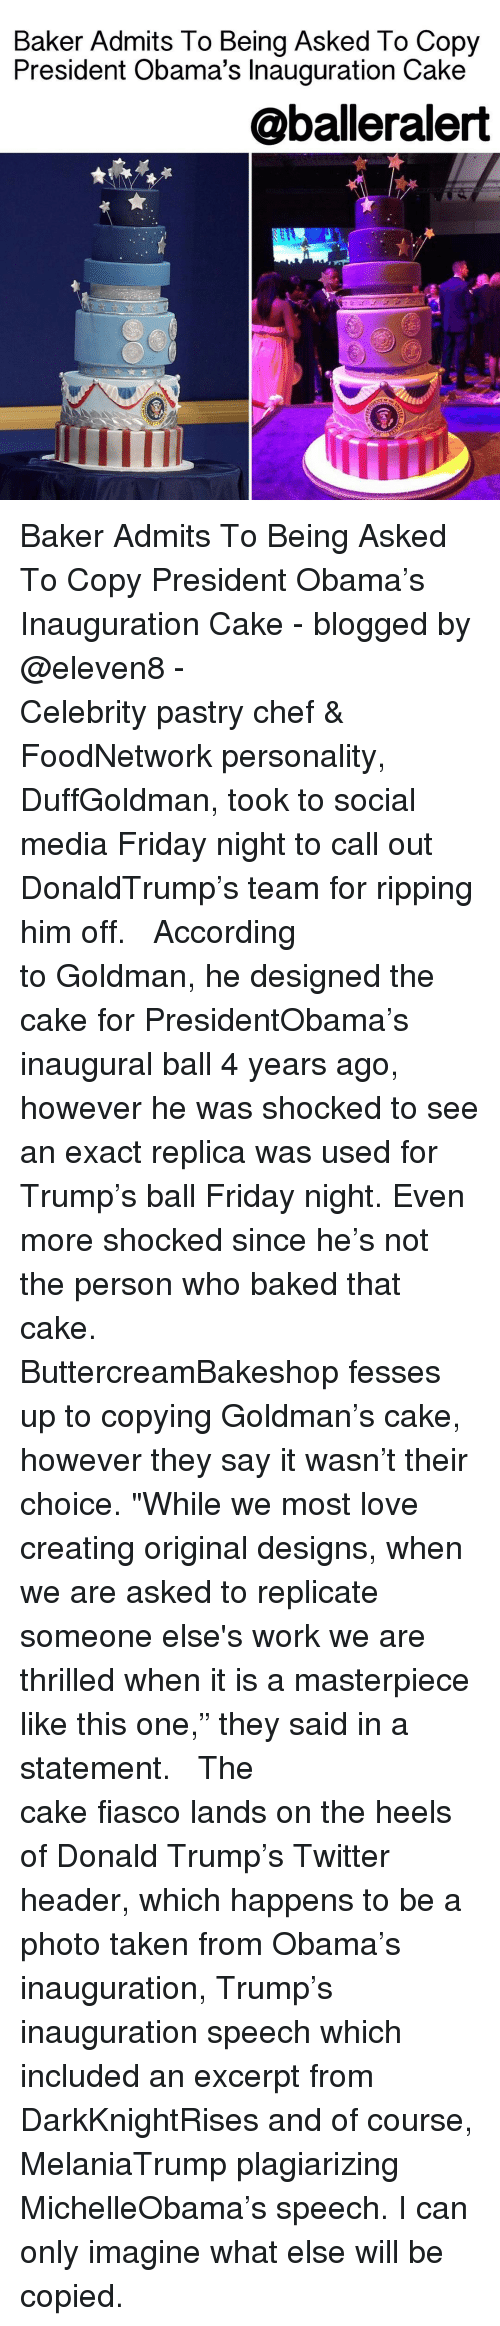 """Baked, Memes, and Chef: Baker Admits To Being Asked To Copy  President Obama's Inauguration Cake  @balleralert Baker Admits To Being Asked To Copy President Obama's Inauguration Cake - blogged by @eleven8 - ⠀⠀⠀⠀⠀⠀⠀⠀⠀ ⠀⠀⠀⠀⠀⠀⠀⠀⠀ Celebrity pastry chef & FoodNetwork personality, DuffGoldman, took to social media Friday night to call out DonaldTrump's team for ripping him off. ⠀⠀⠀⠀⠀⠀⠀⠀⠀ ⠀⠀⠀⠀⠀⠀⠀⠀⠀ According to Goldman, he designed the cake for PresidentObama's inaugural ball 4 years ago, however he was shocked to see an exact replica was used for Trump's ball Friday night. Even more shocked since he's not the person who baked that cake. ⠀⠀⠀⠀⠀⠀⠀⠀⠀ ⠀⠀⠀⠀⠀⠀⠀⠀⠀ ButtercreamBakeshop fesses up to copying Goldman's cake, however they say it wasn't their choice. """"While we most love creating original designs, when we are asked to replicate someone else's work we are thrilled when it is a masterpiece like this one,"""" they said in a statement. ⠀⠀⠀⠀⠀⠀⠀⠀⠀ ⠀⠀⠀⠀⠀⠀⠀⠀⠀ The cake fiasco lands on the heels of Donald Trump's Twitter header, which happens to be a photo taken from Obama's inauguration, Trump's inauguration speech which included an excerpt from DarkKnightRises and of course, MelaniaTrump plagiarizing MichelleObama's speech. I can only imagine what else will be copied."""